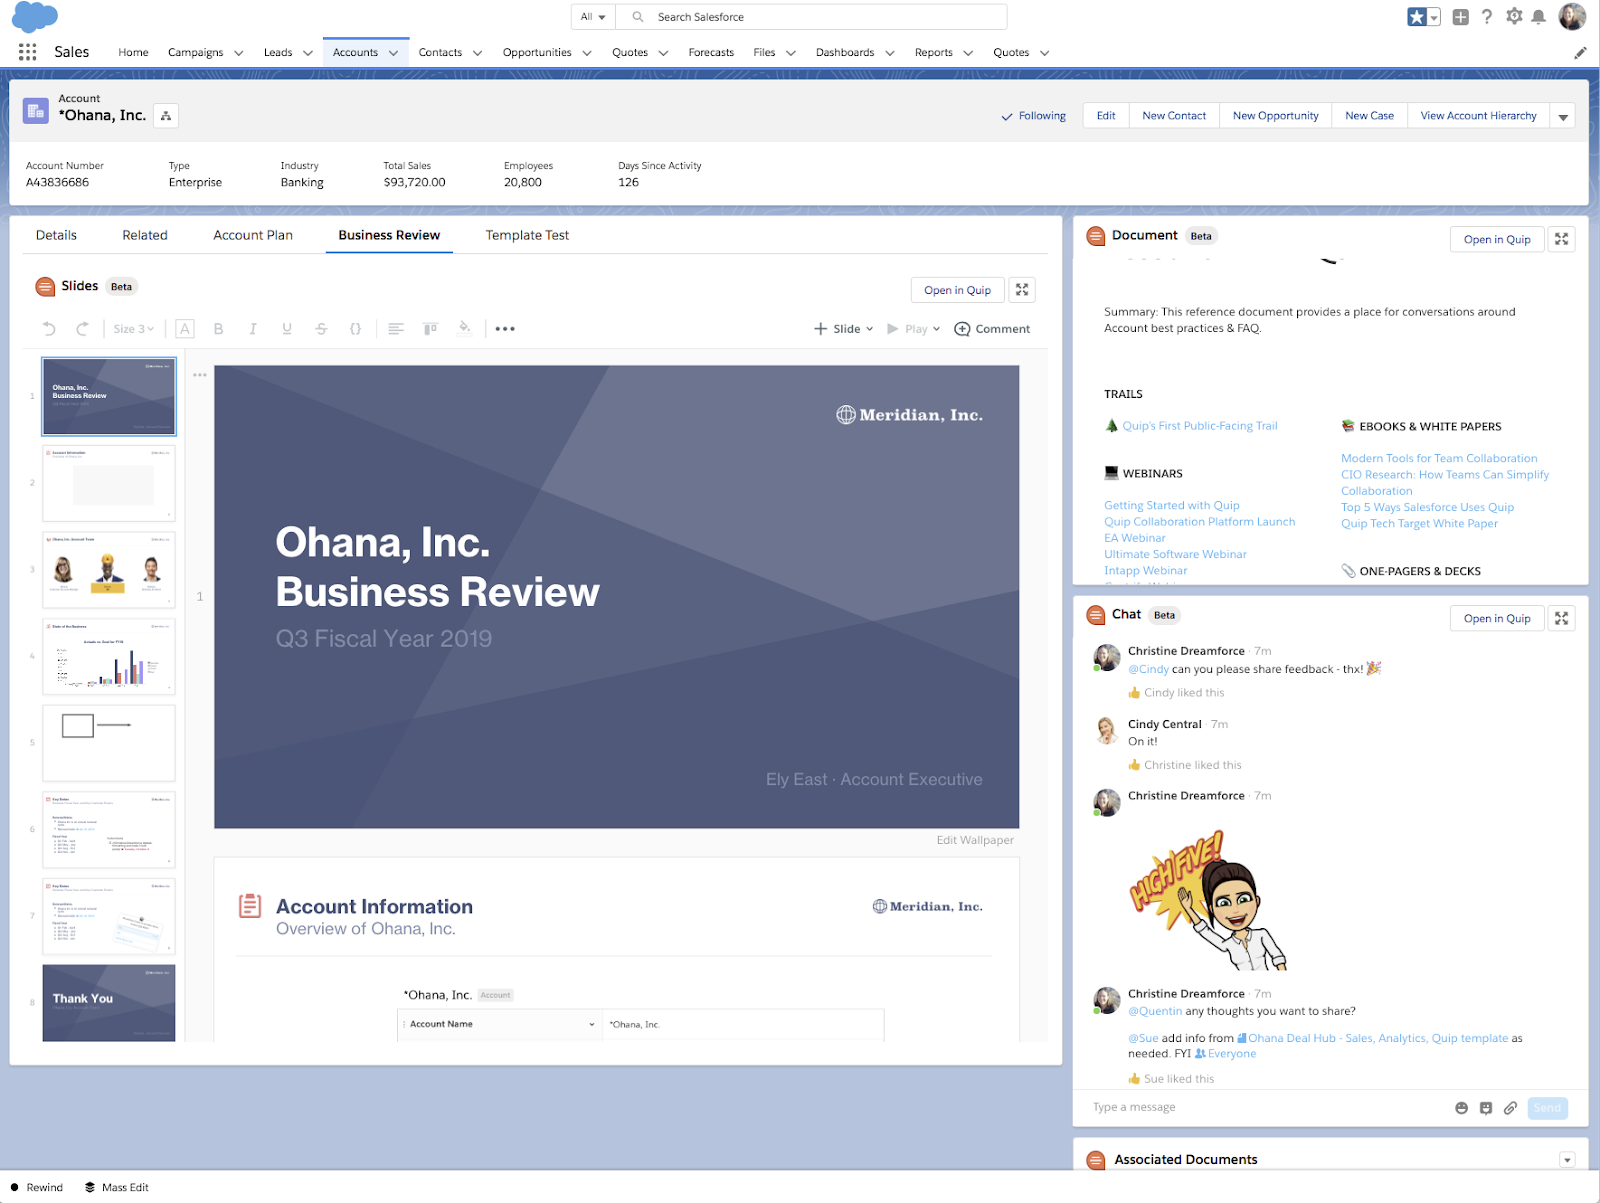 Multiple Quip components that make up the Business Review in the Salesforce Account record, including slides, FAQ document, and chat room.